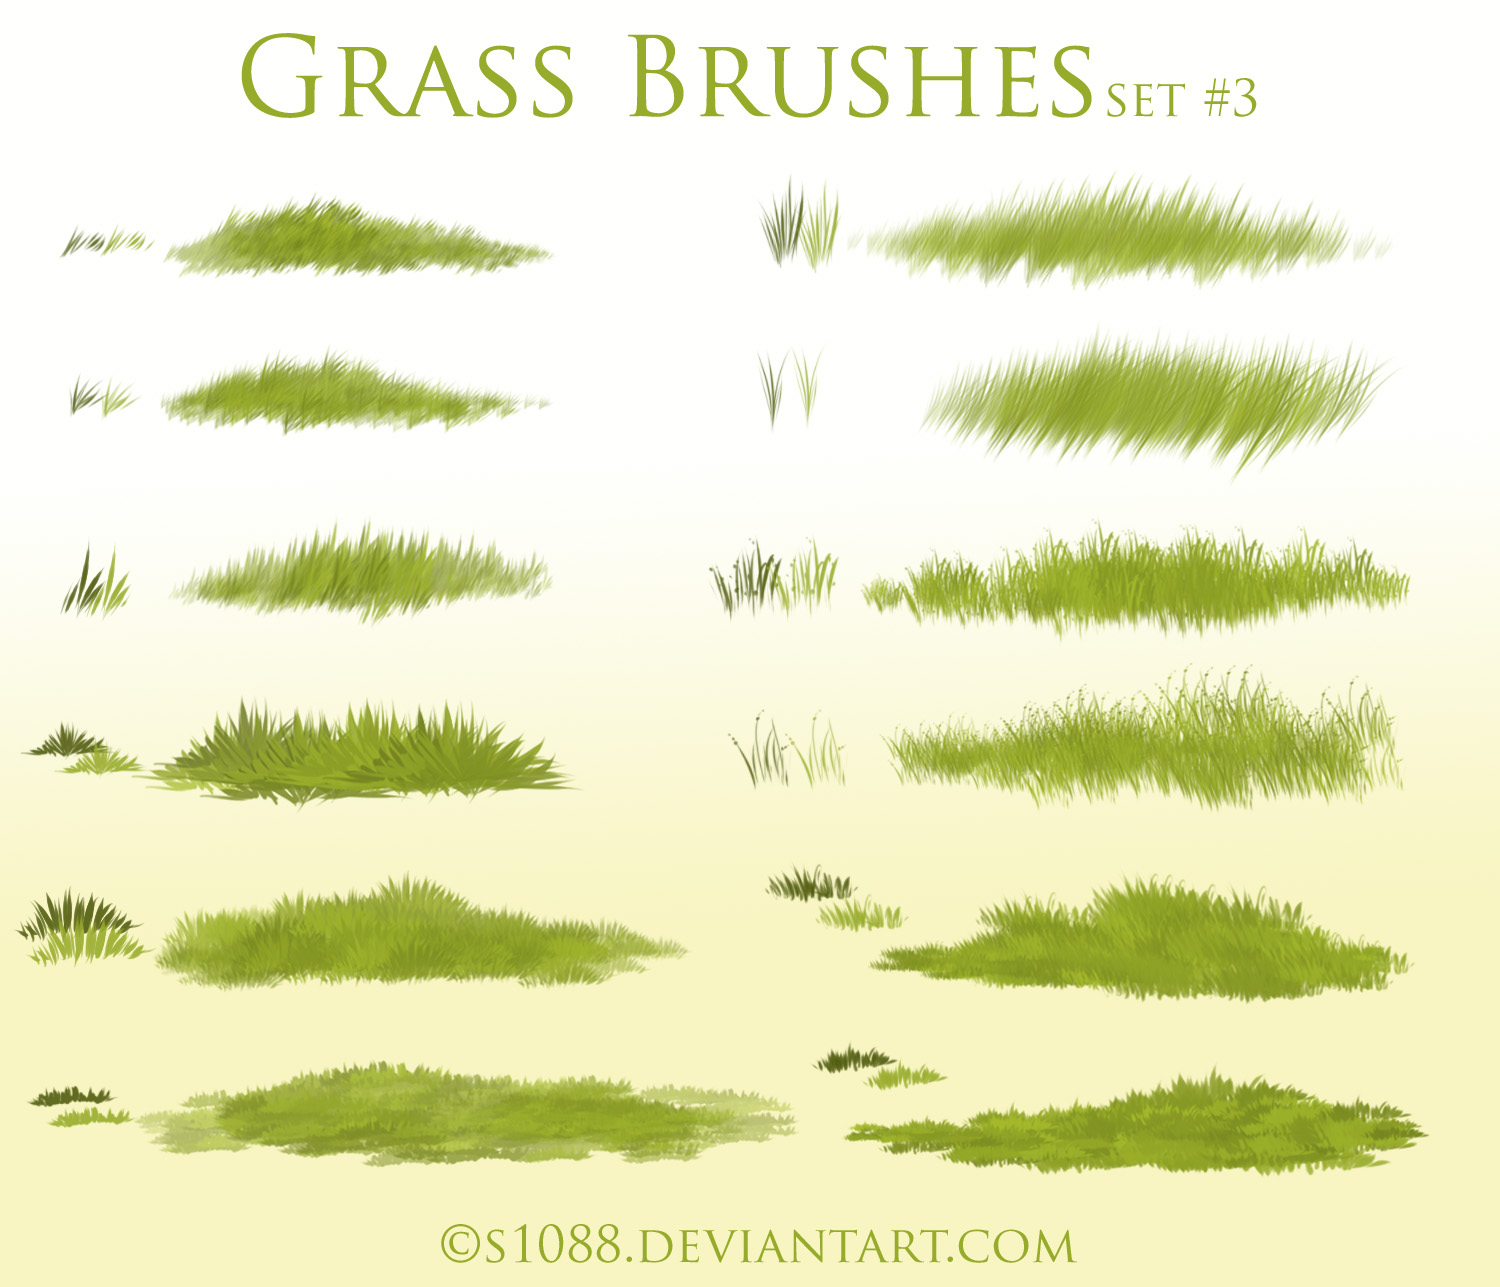 Awesome Brushes favourites by Angelpaw33 on DeviantArt